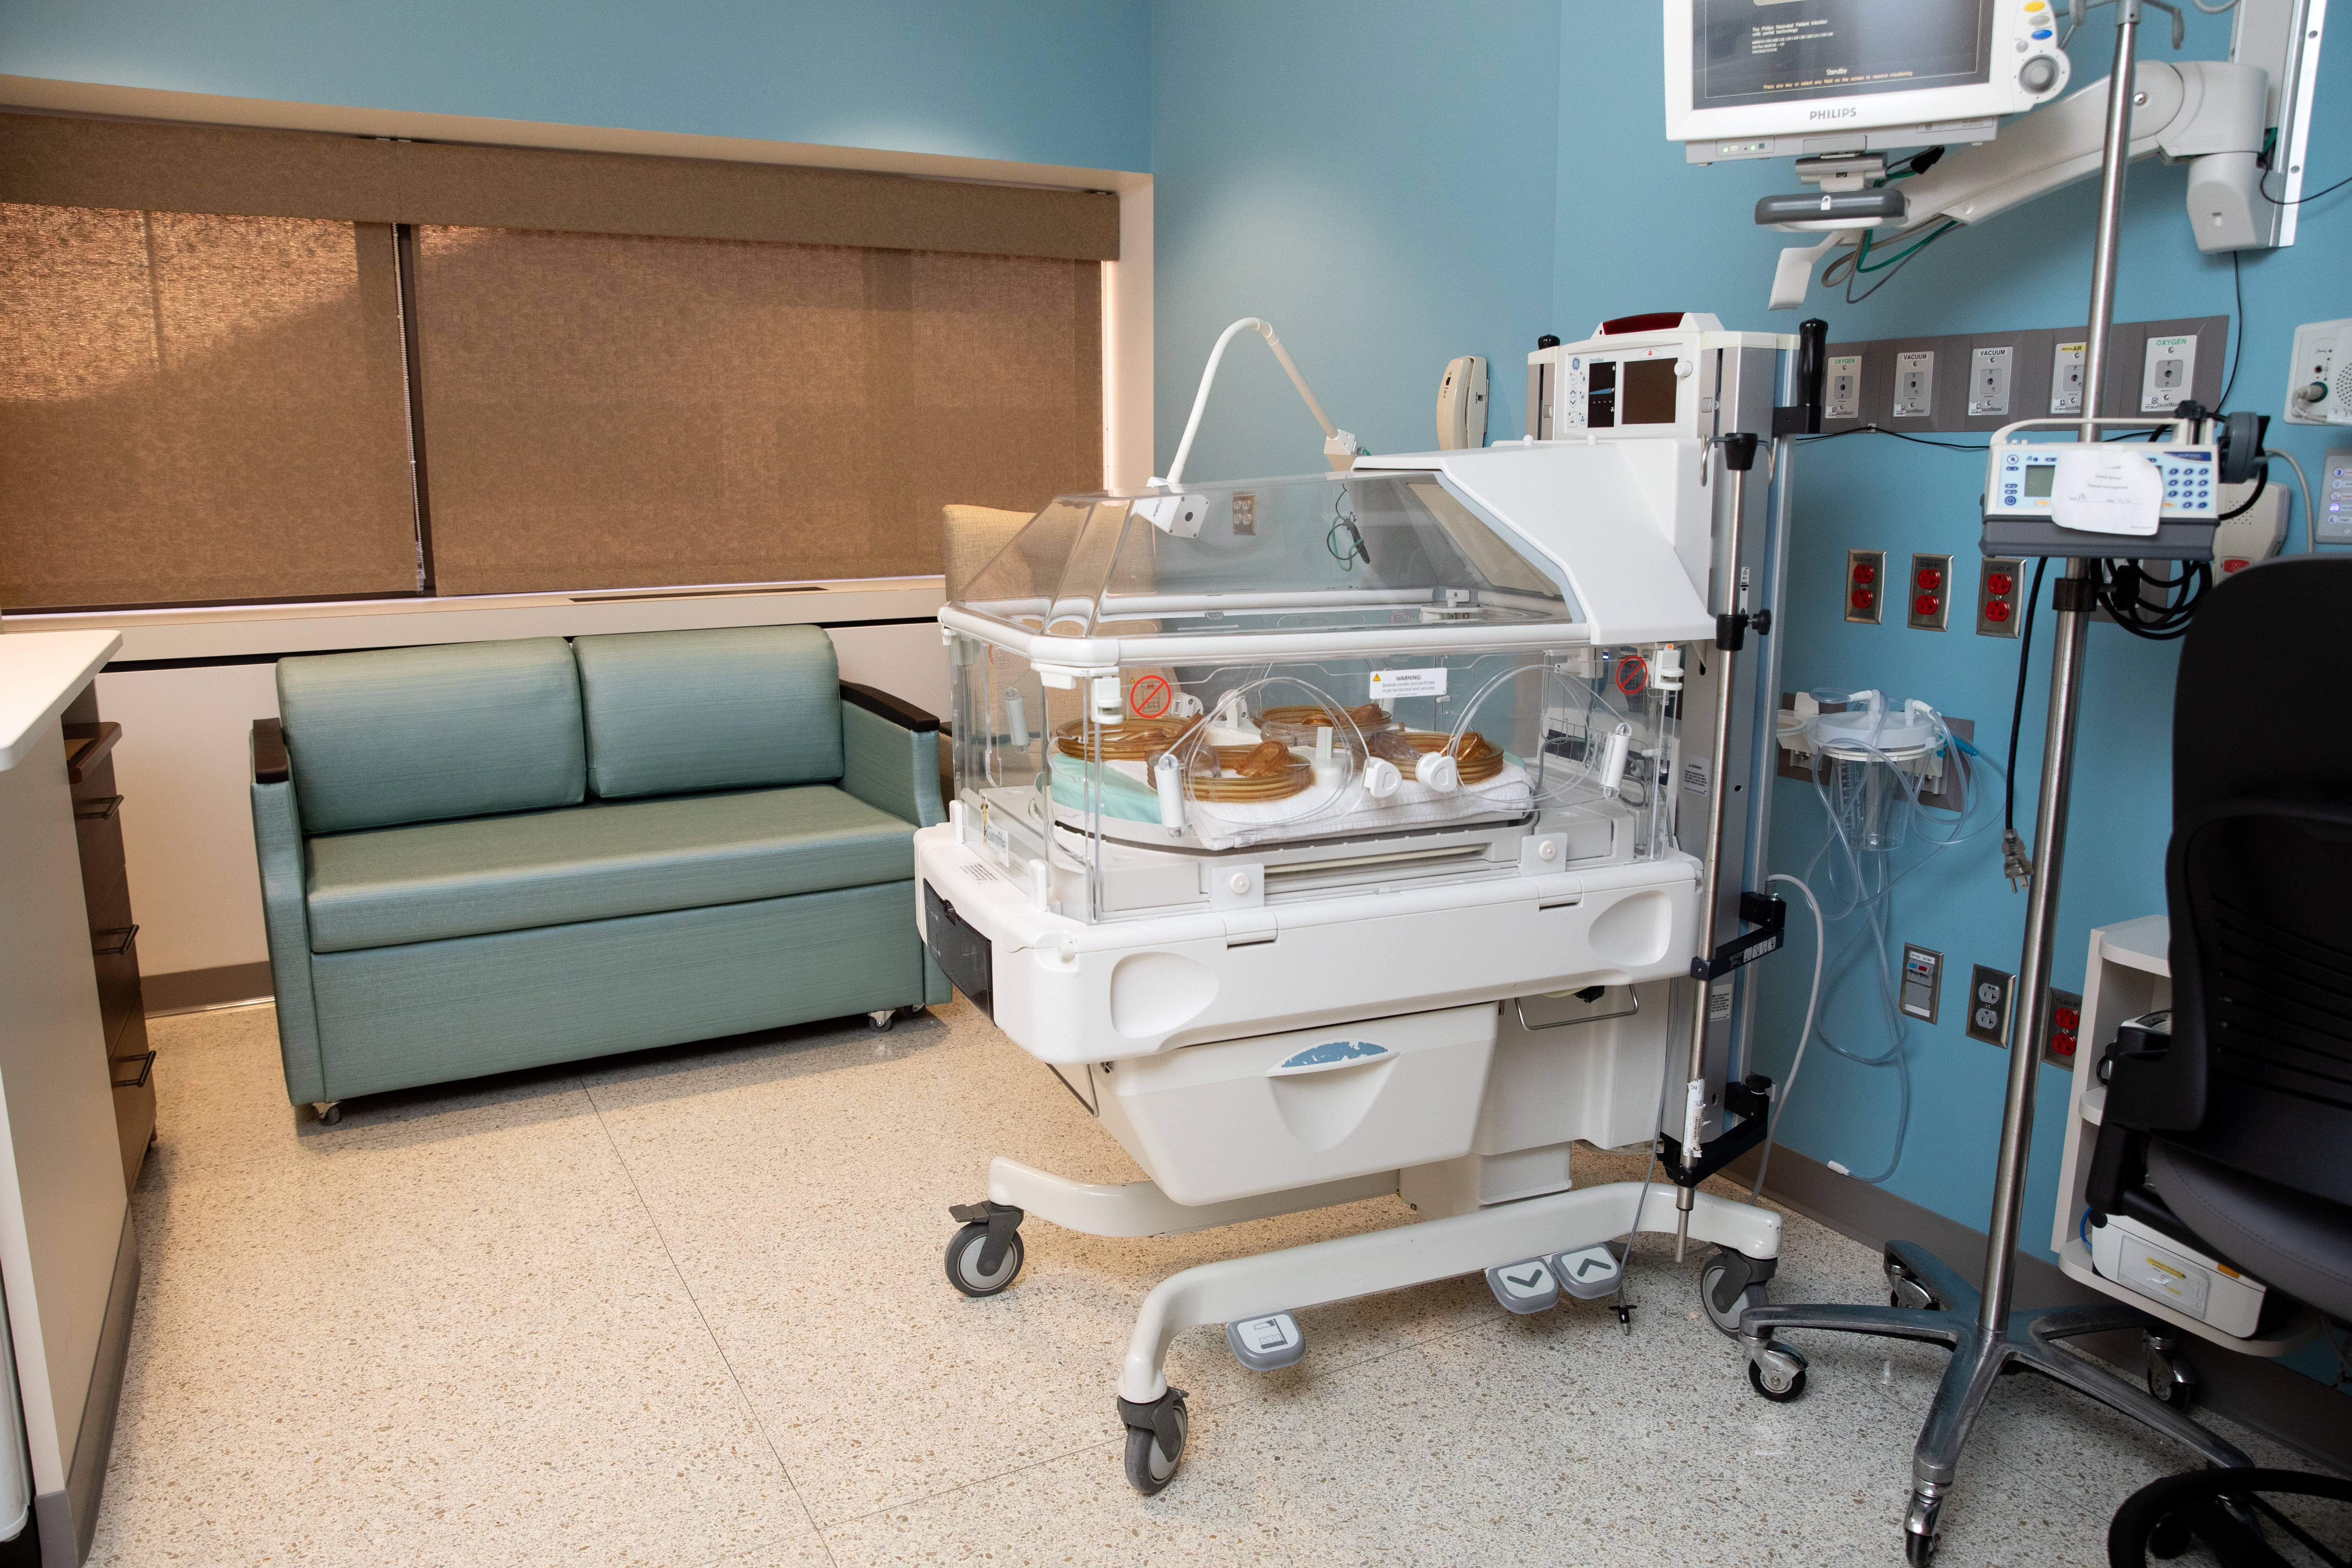 NICU room with monitors and incubator